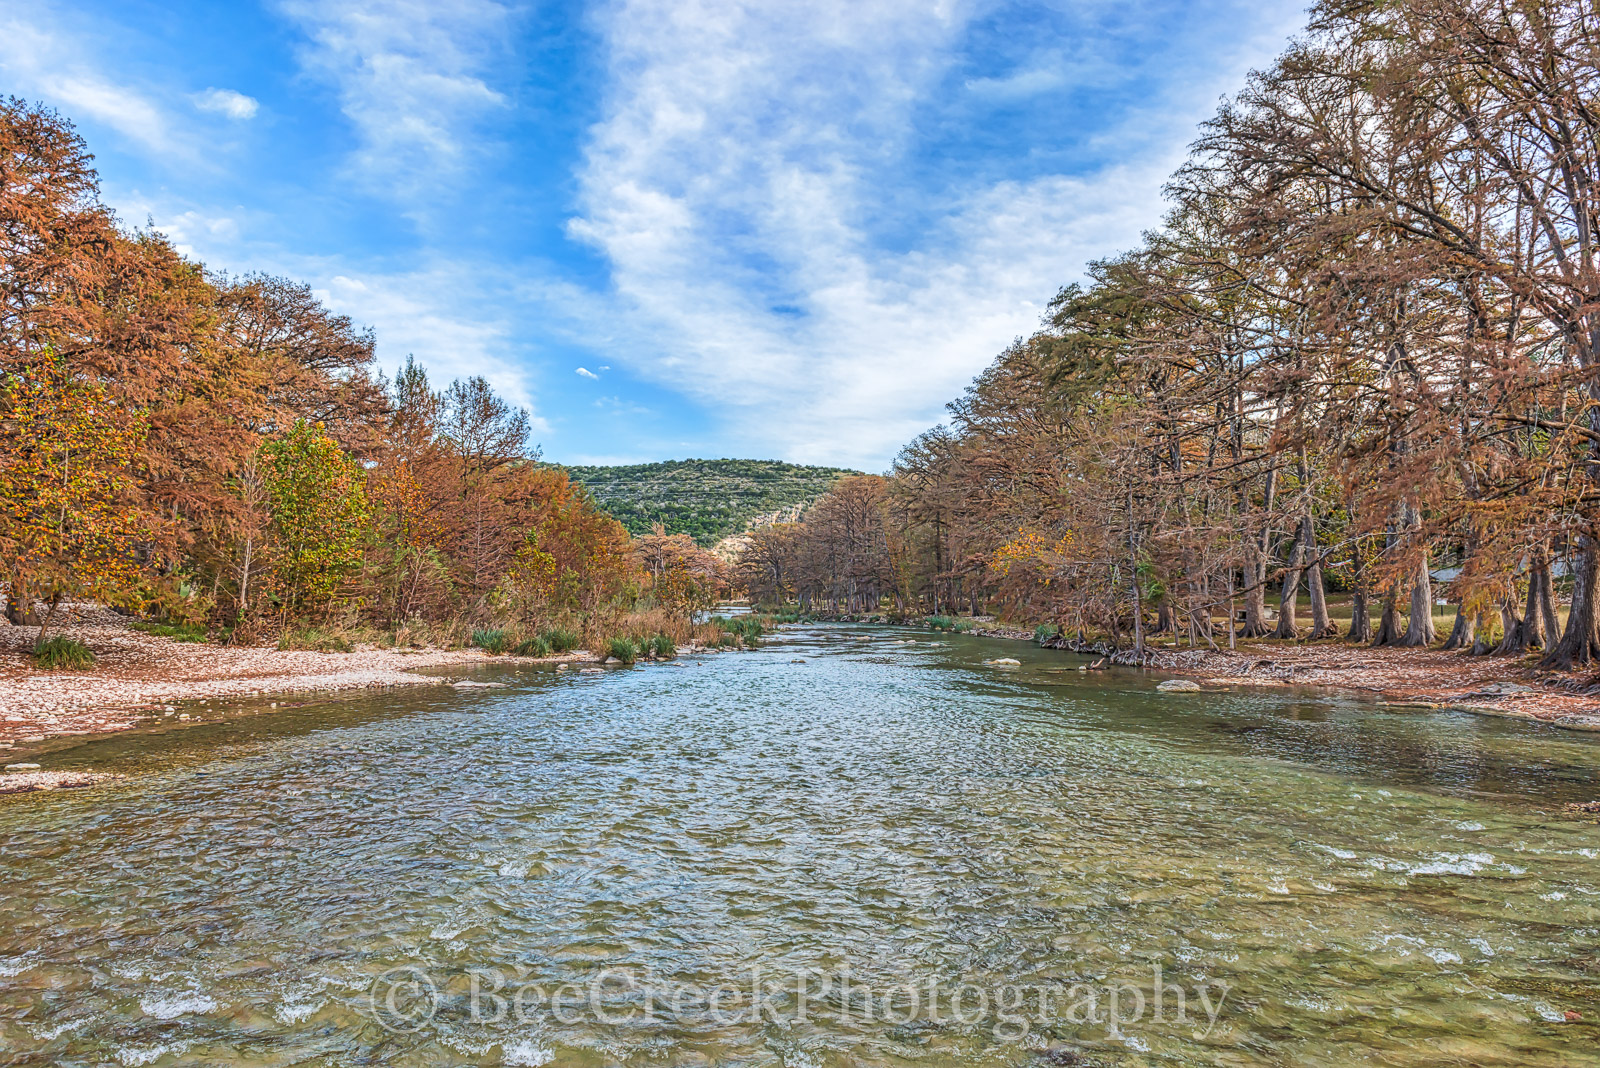 Concan, Frio River, River, fall, fall landscape, fall landscapes, scenic, scenic Tx images, scenic texas images, texas, water, photo